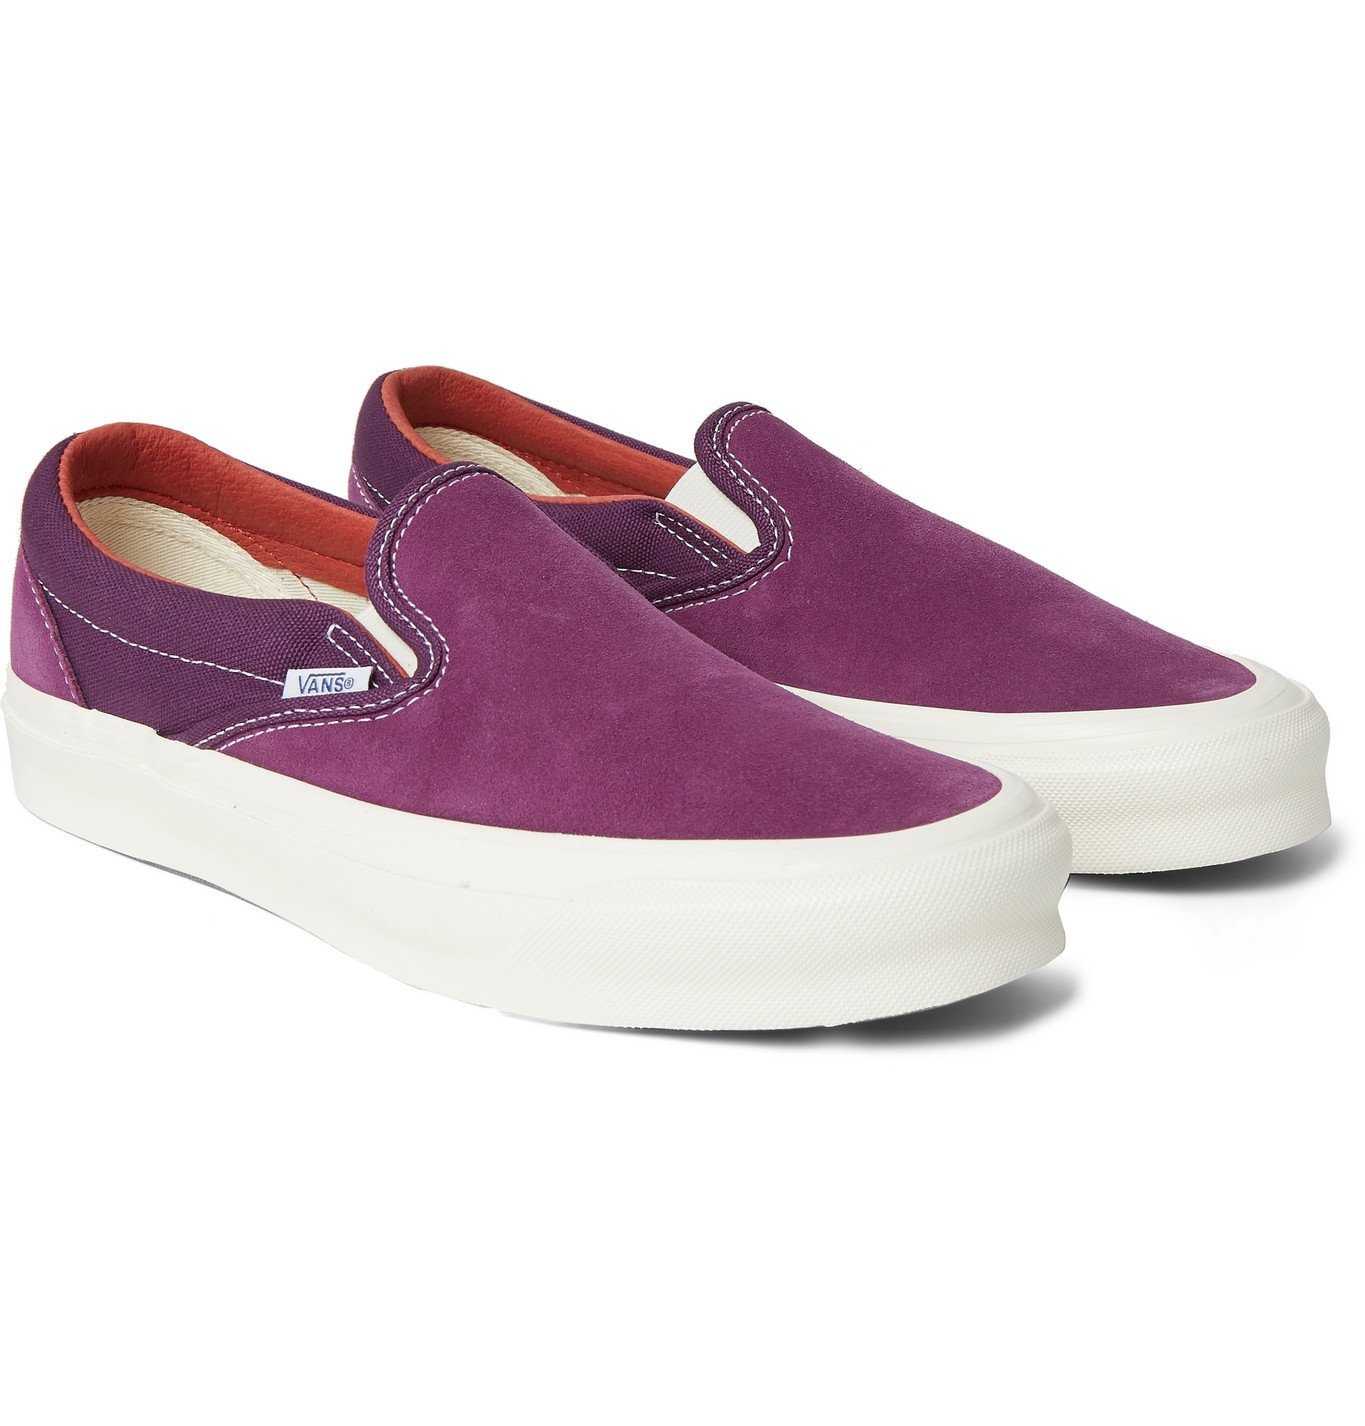 Photo: Vans - OG Classic LX Suede and Canvas Slip-On Sneakers - Purple